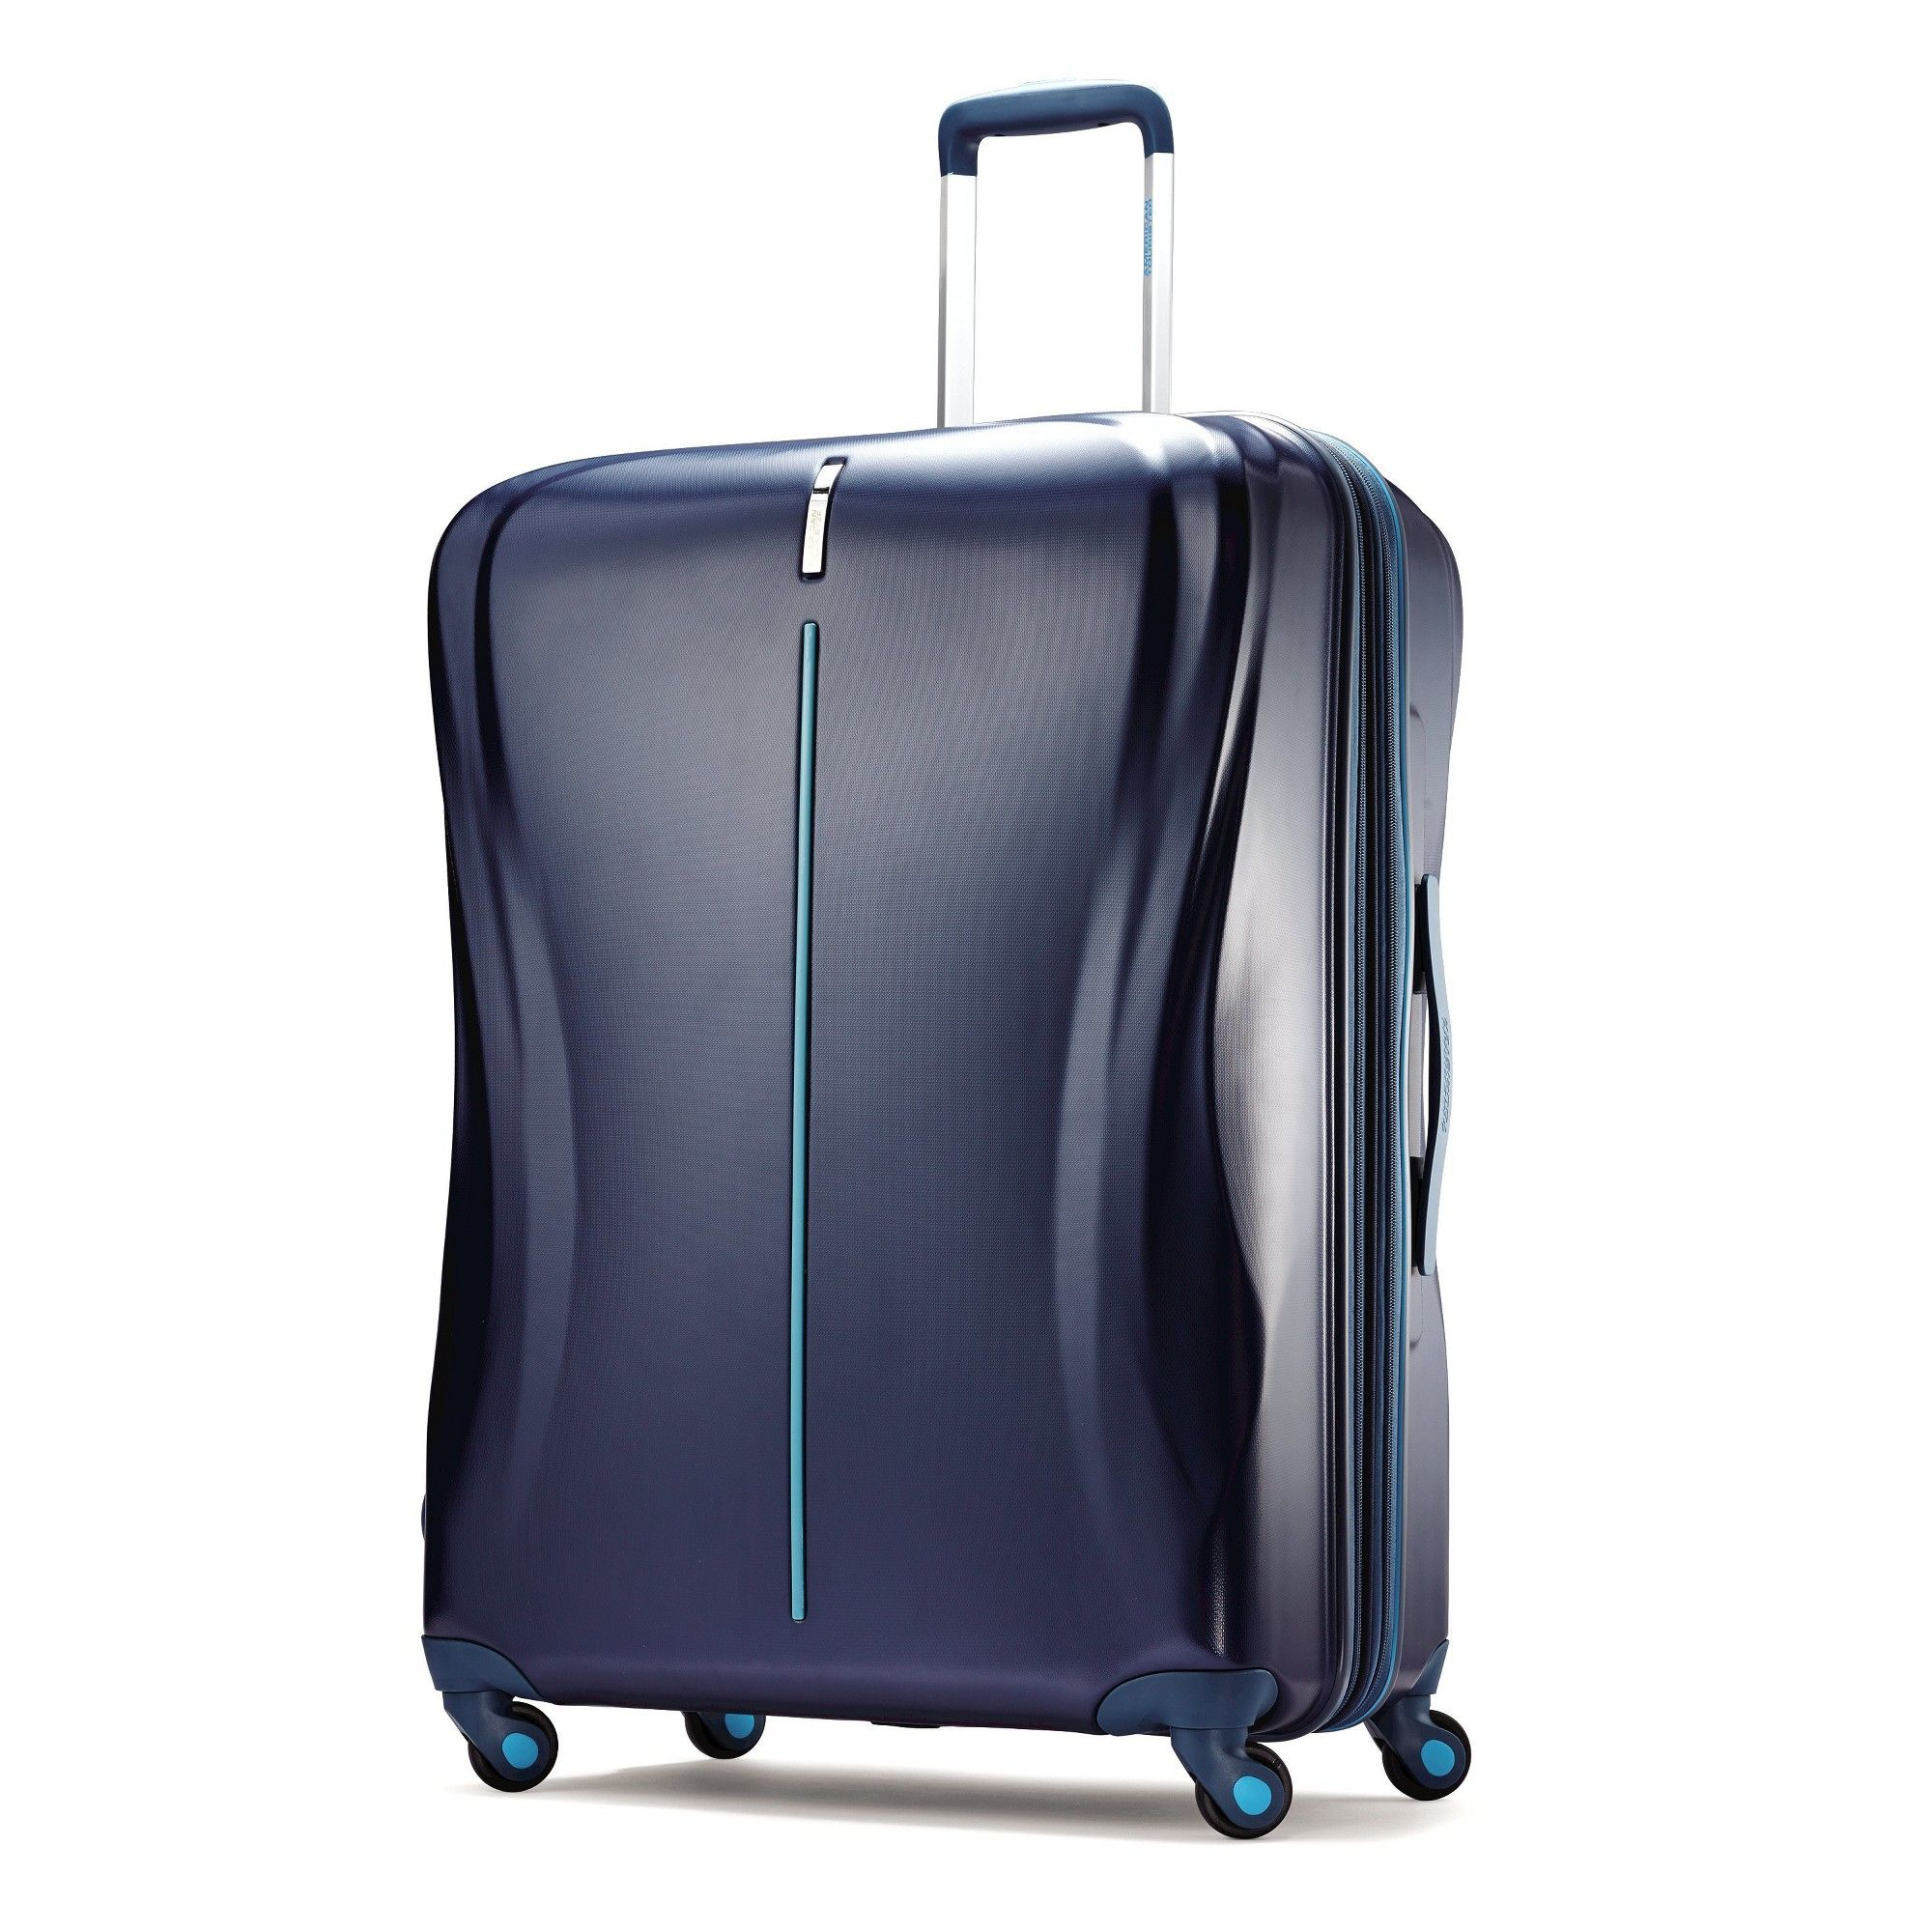 fcfd6c62171d American Tourister Avatar 28 Hardside Luggage - Blue